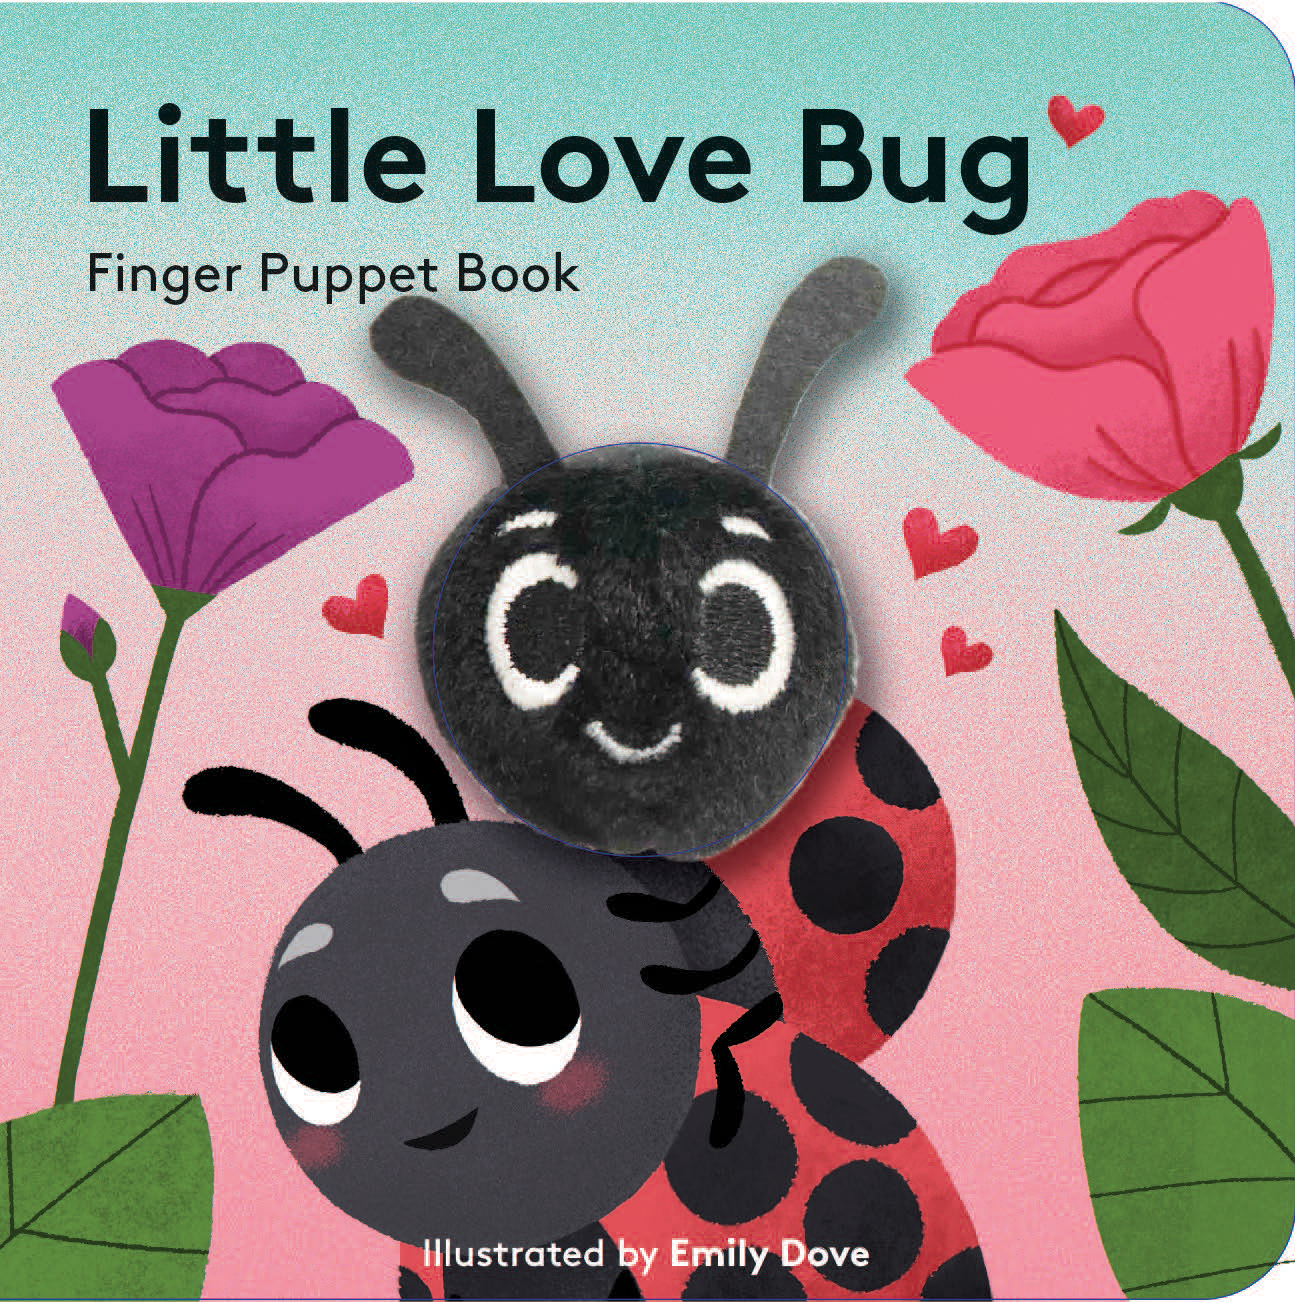 Emily Dove - Little Love Bug Finger Puppet Book